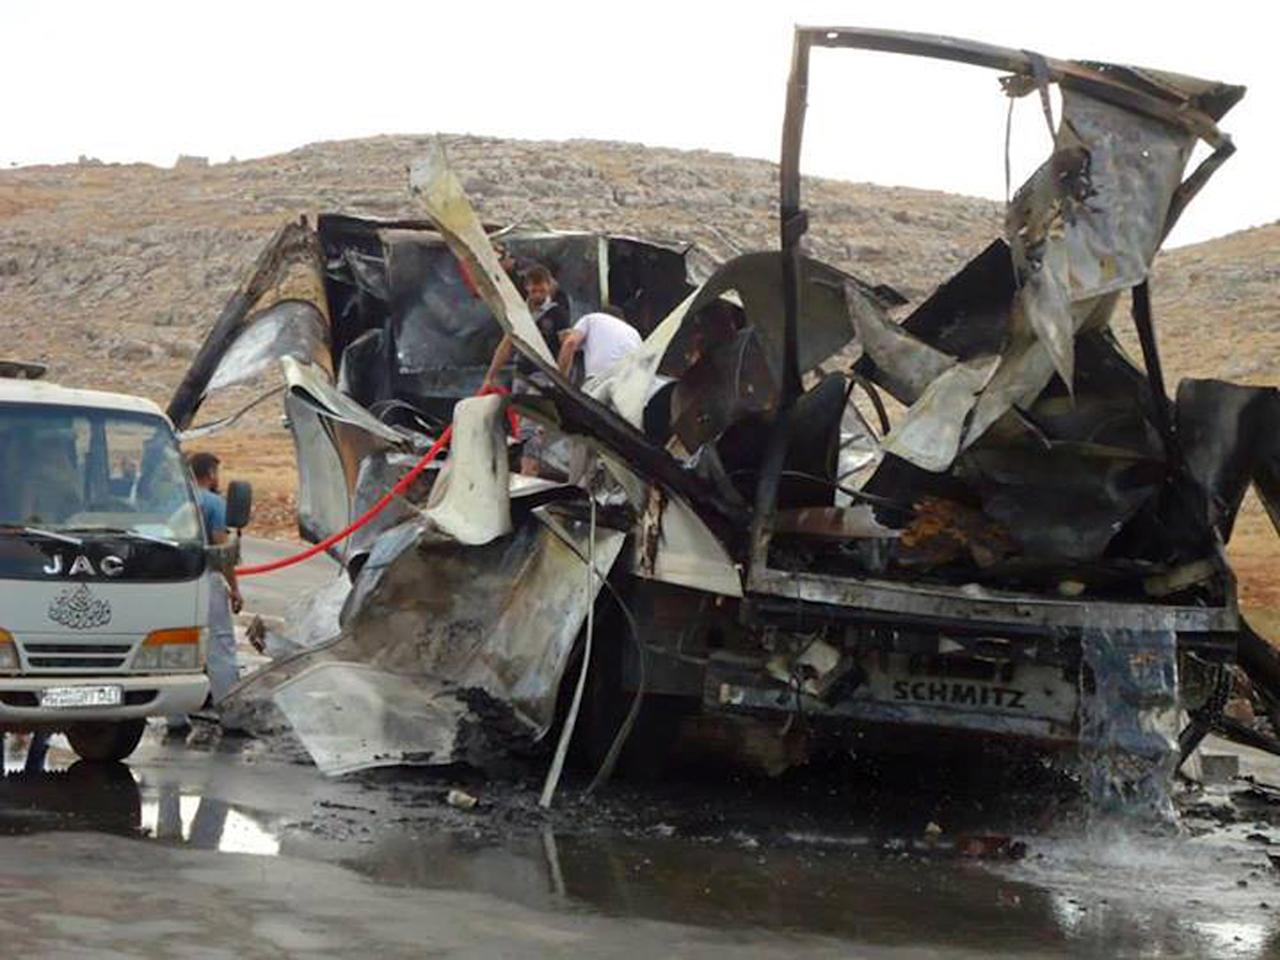 This citizen journalism image provided by Edlib News Network, ENN, which has been authenticated based on its contents and other AP reporting, shows the scene where a car bomb exploded at a crossing point along Syria's volatile border with Turkey, in Bab al-Hawa, Syria, Tuesday, Sept. 17, 2013. (AP Photo/Edlib News Network ENN)